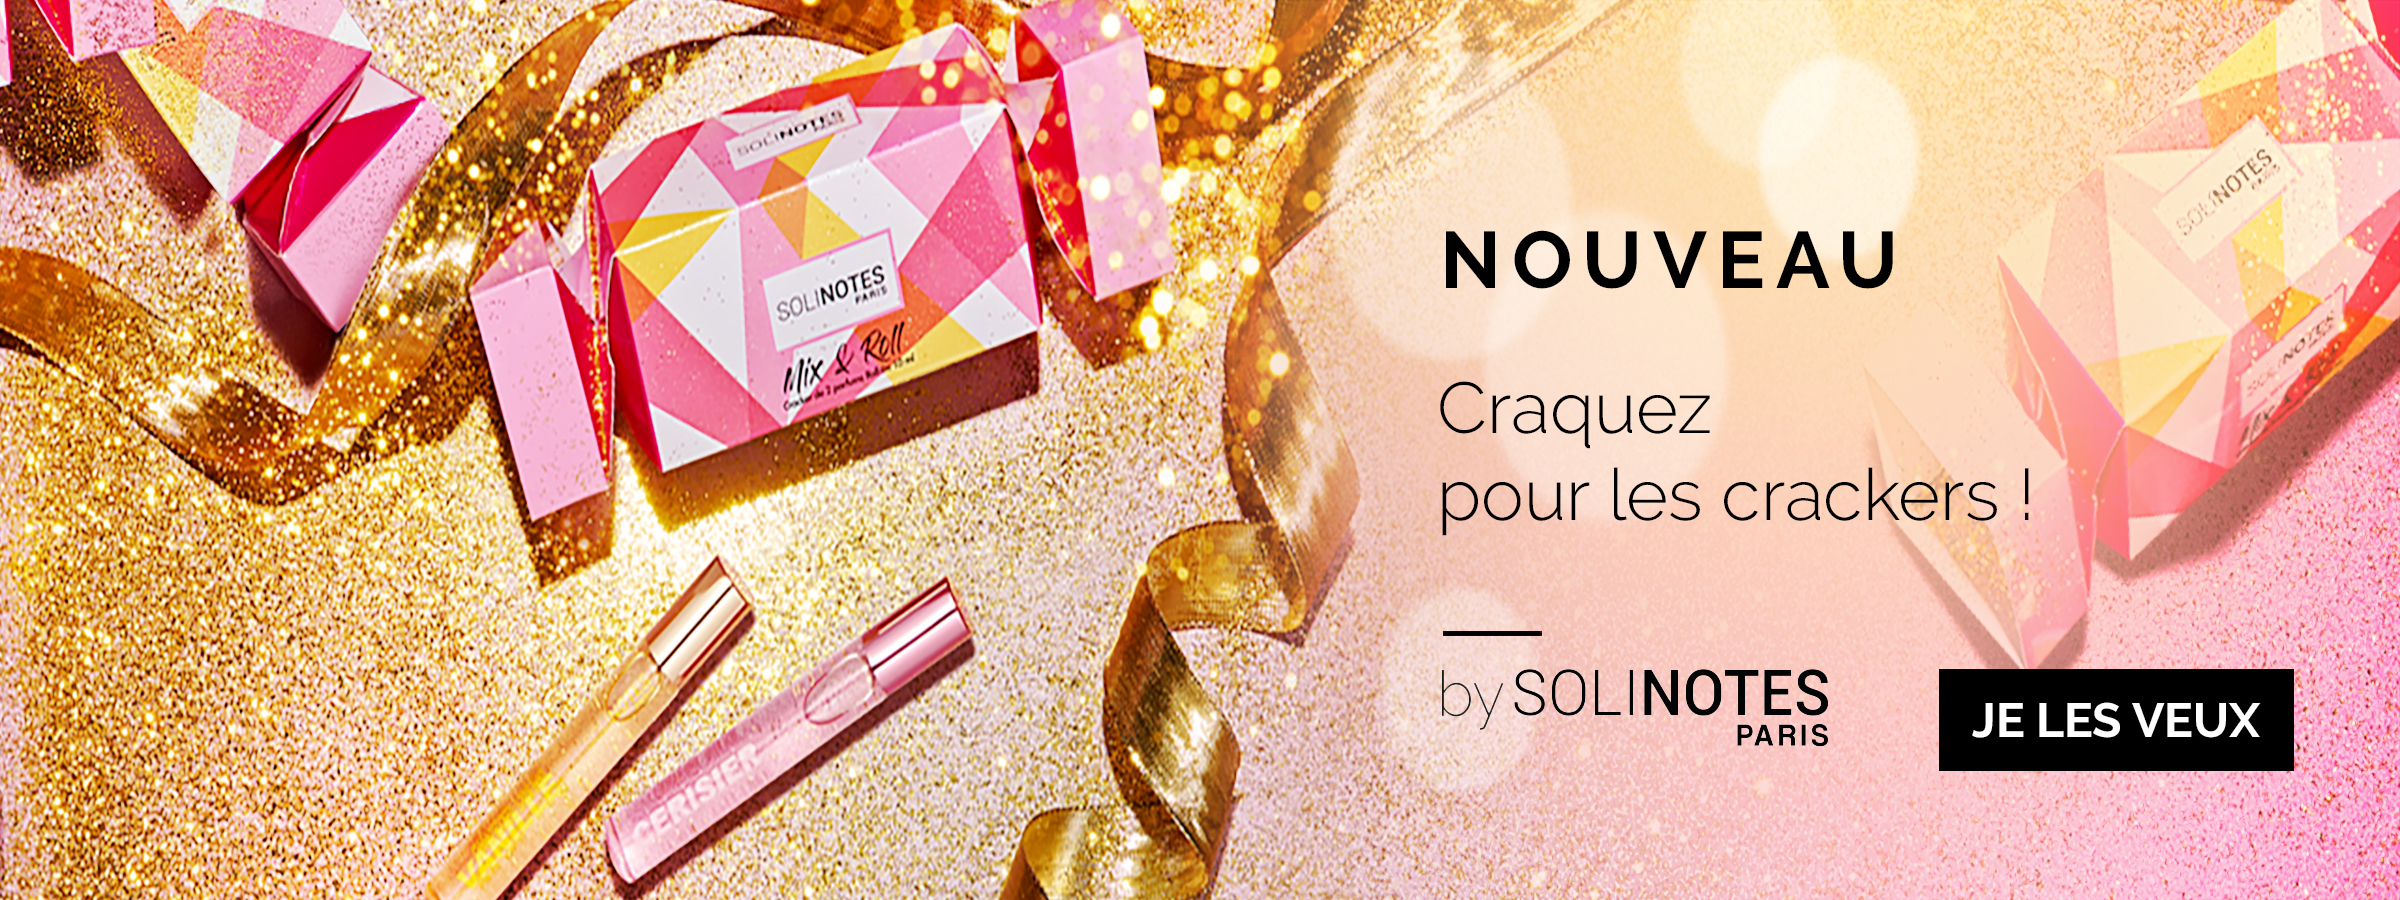 Probeautic Institut : Solinotes cracker